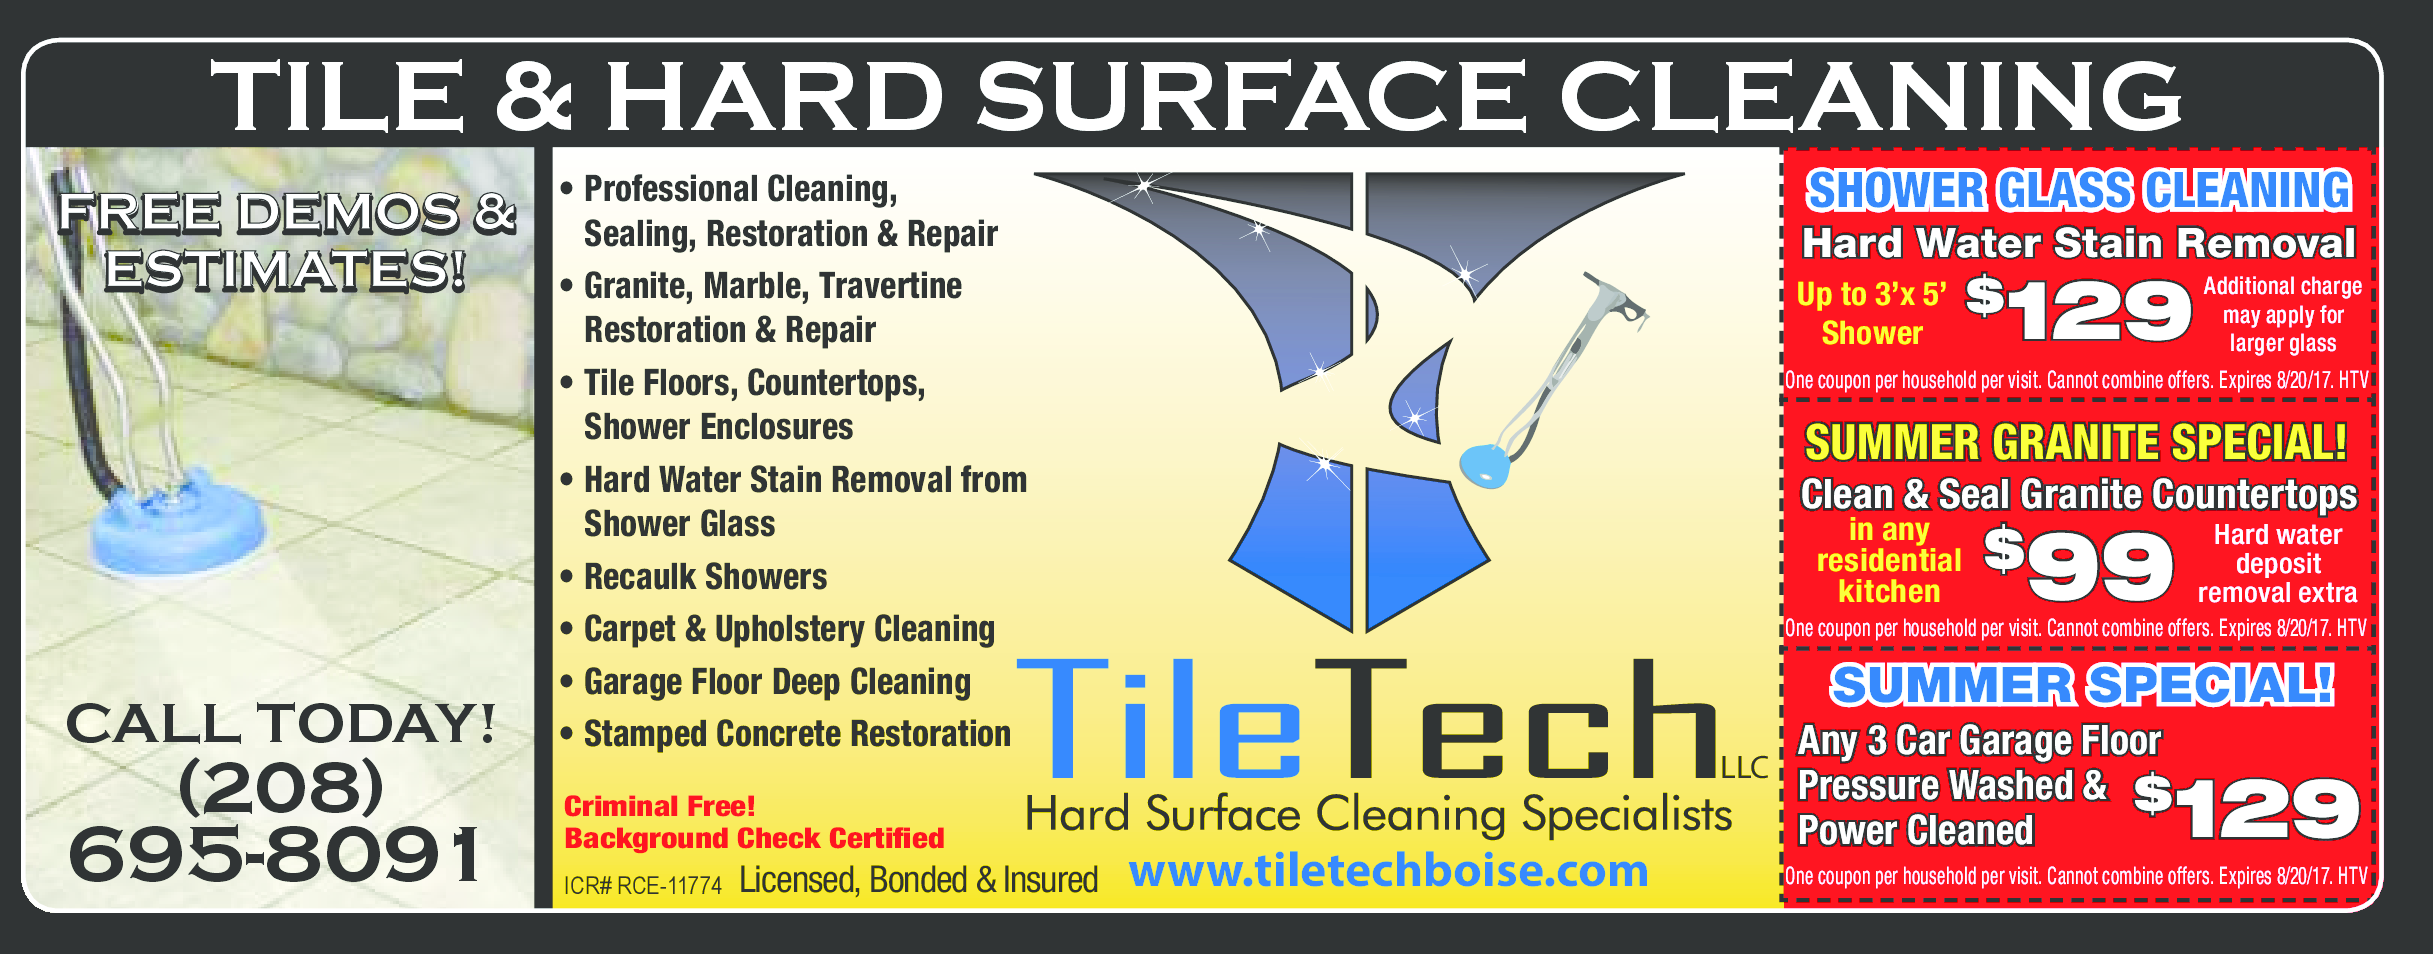 All Tile Tech Coupons 3 View Larger